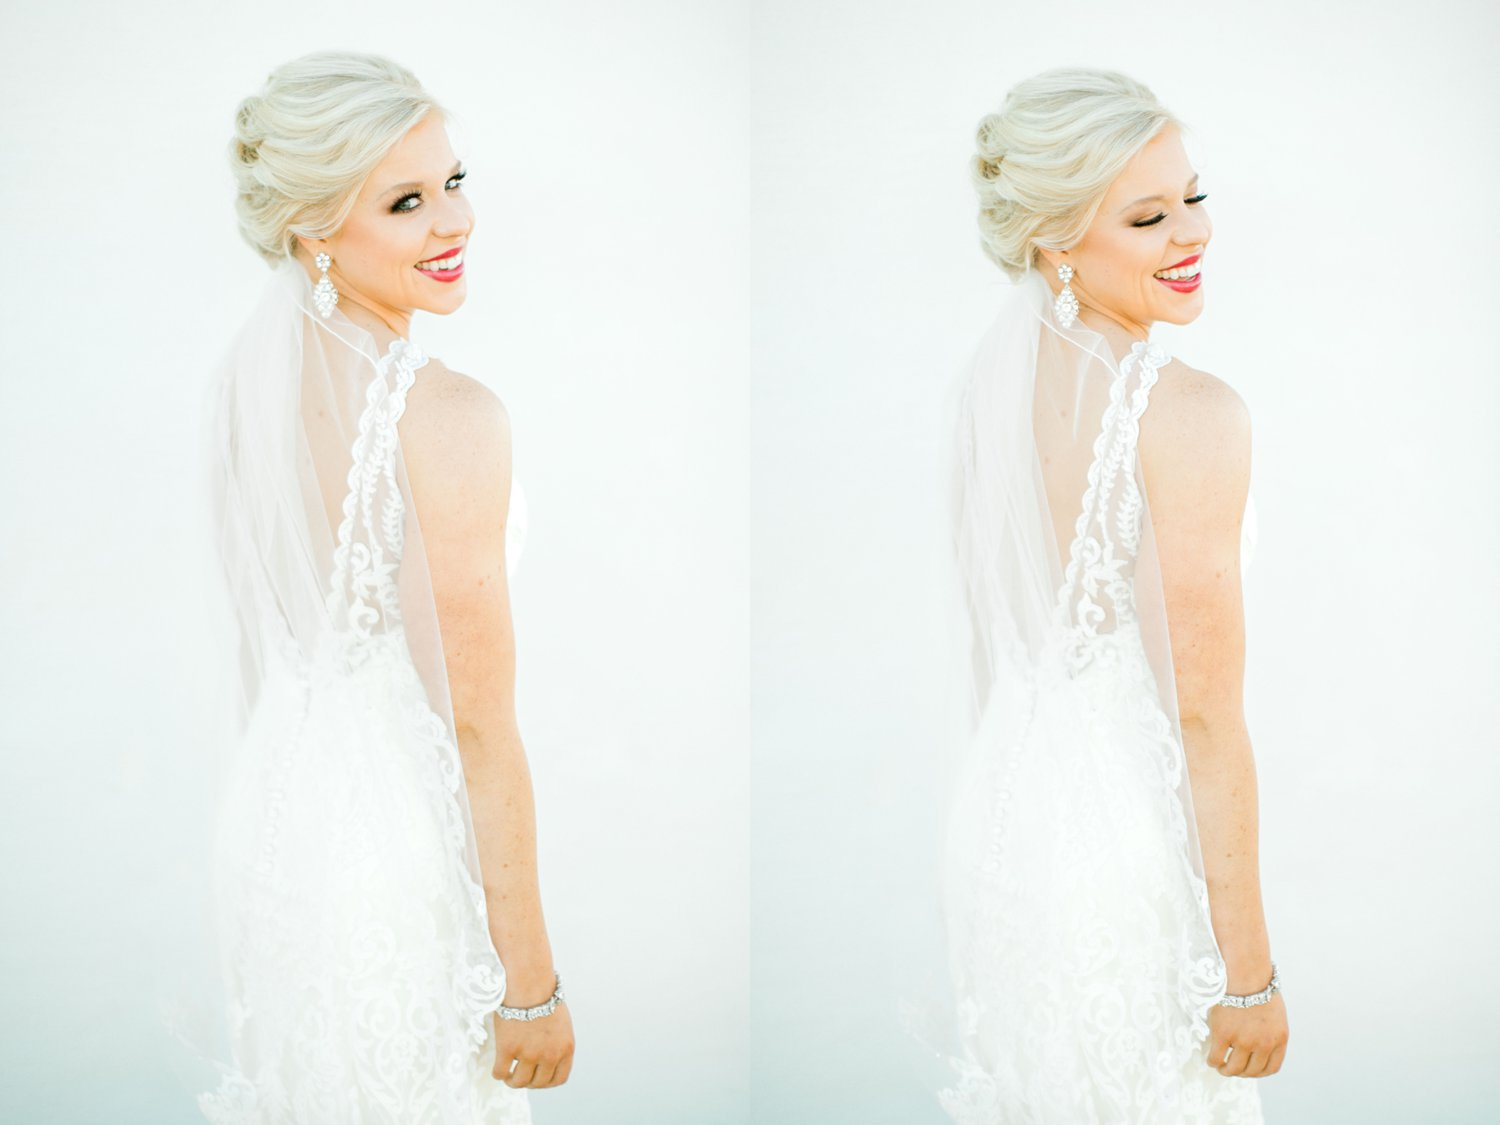 Jenna-evans-bridals-balmorhea-texas-fort-davis-wedding-photographer-lubbock-photographer__0050.jpg